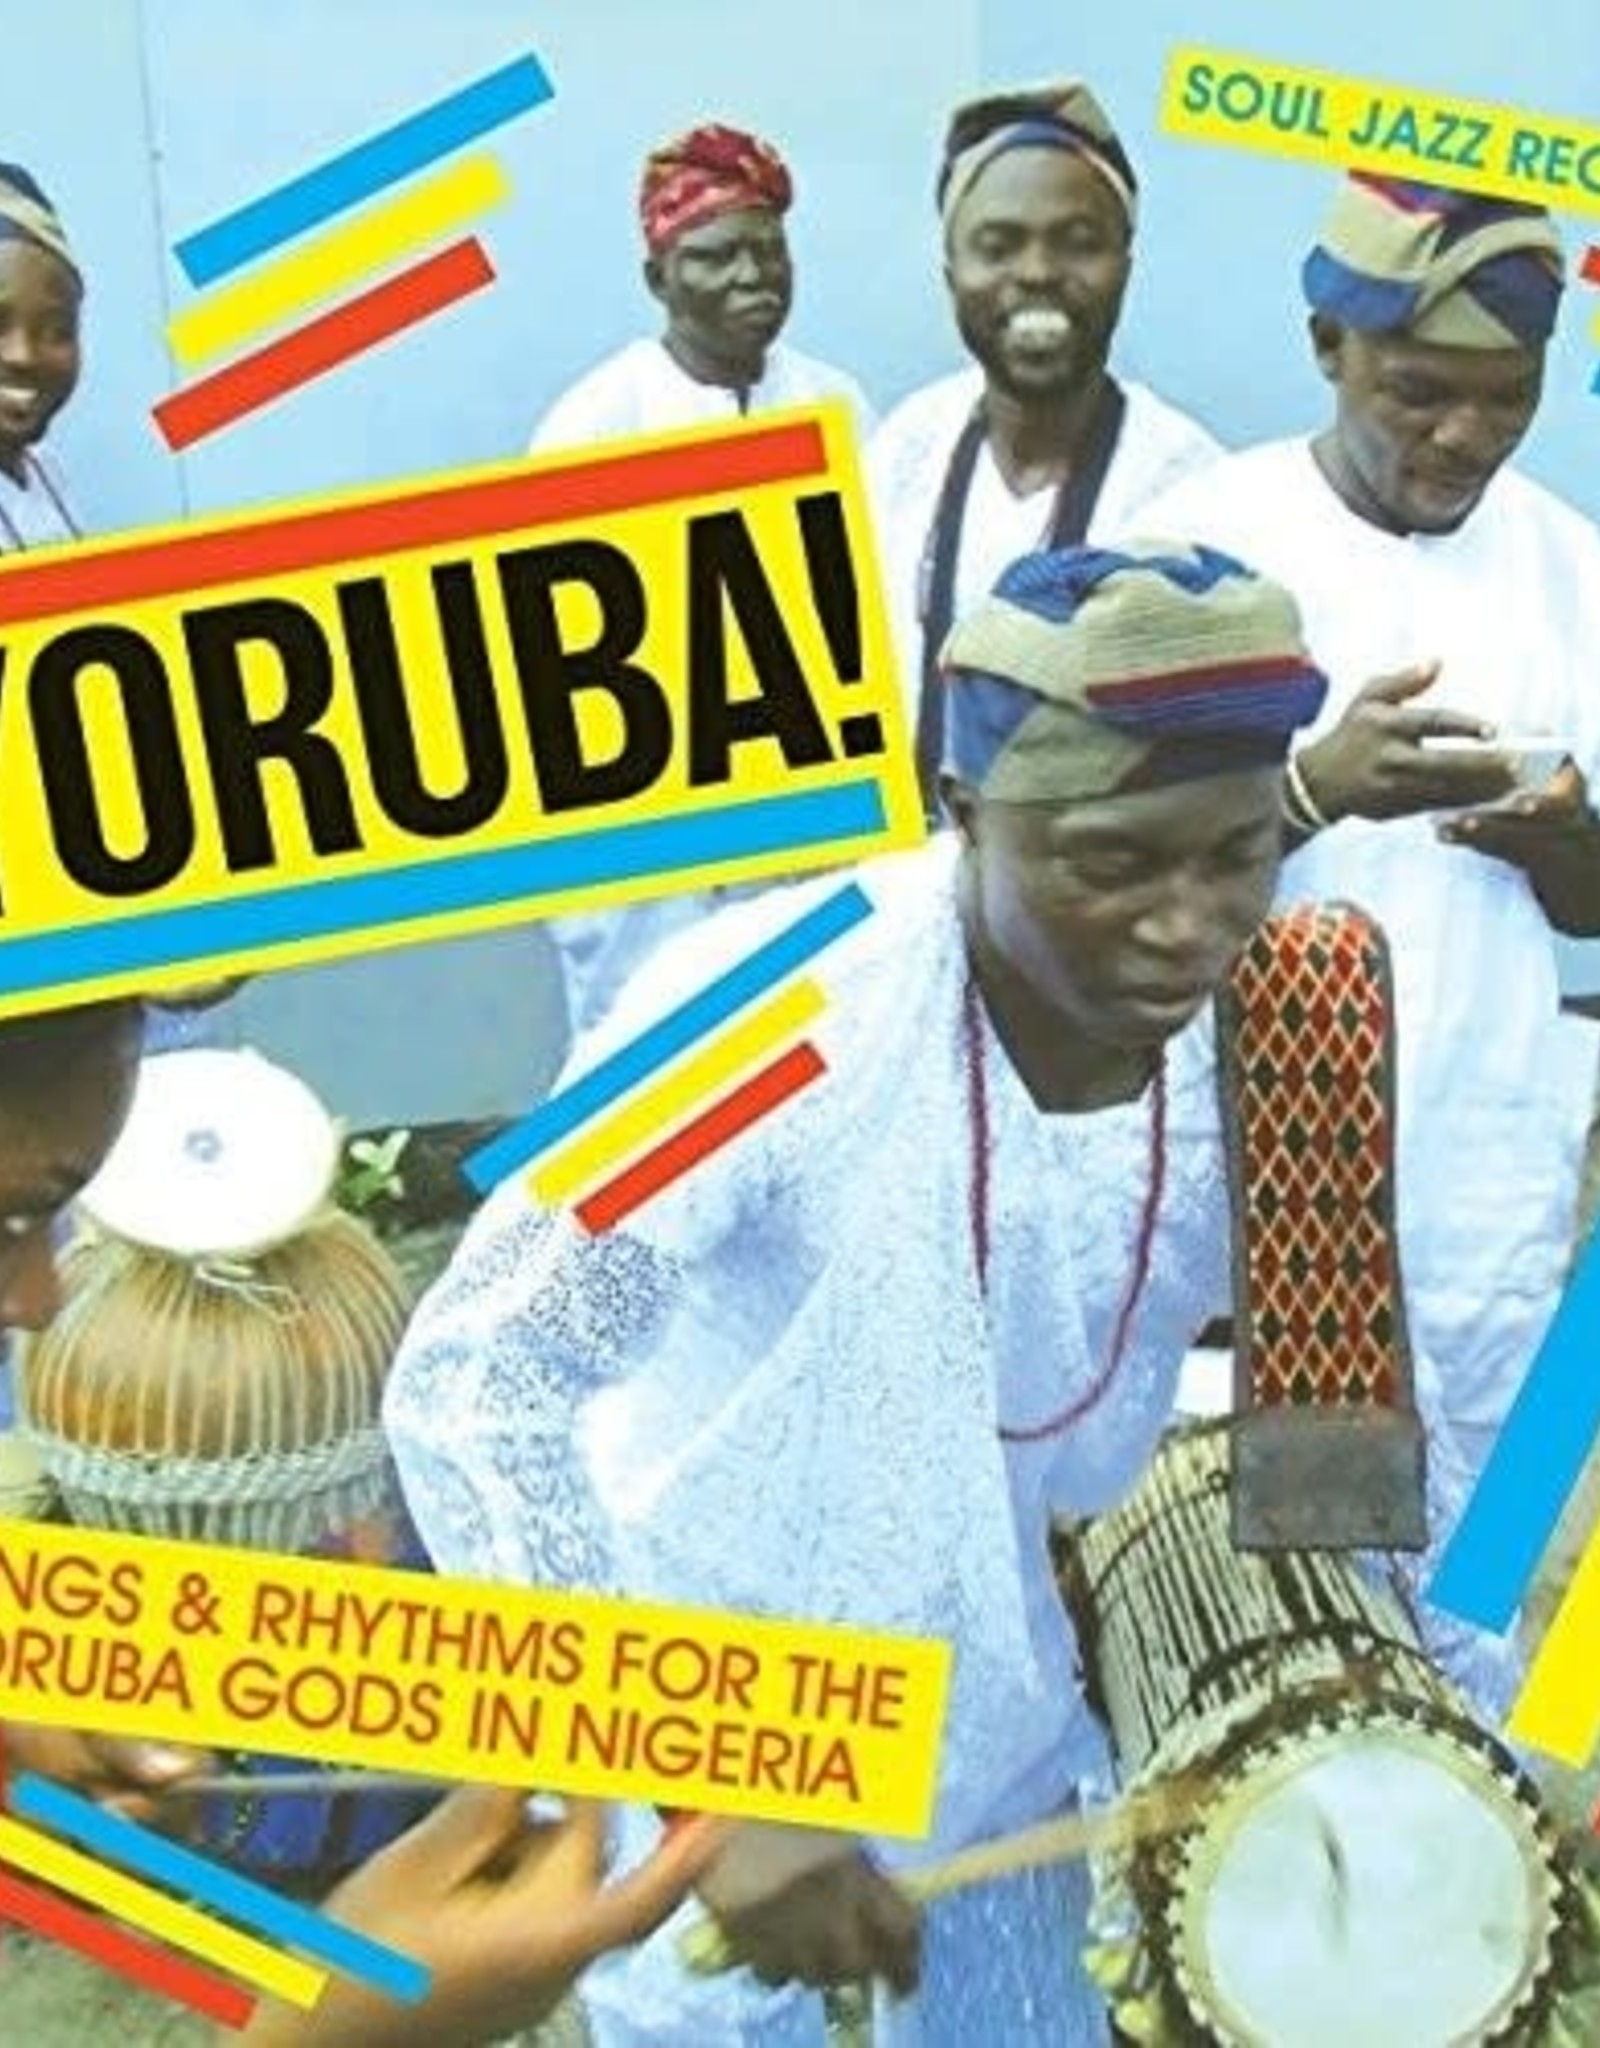 Soul Jazz Records Presents - YORUBA! Songs and Rhythms for the Yoruba Gods in Nigeria